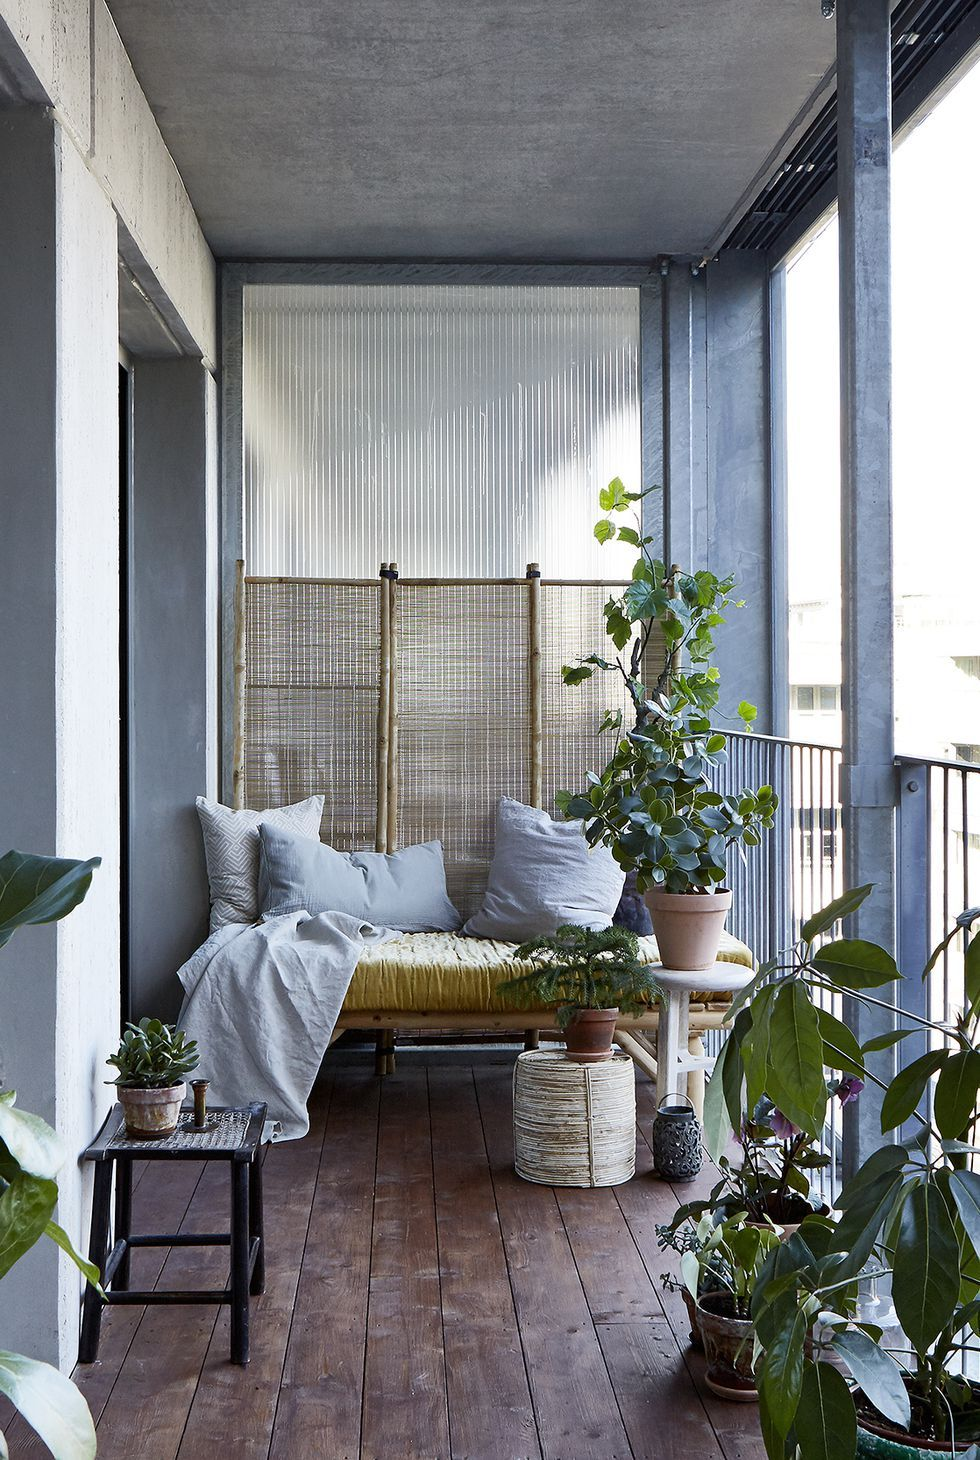 17 Chic Backyard Fence Ideas That Will Keep Your Nosy